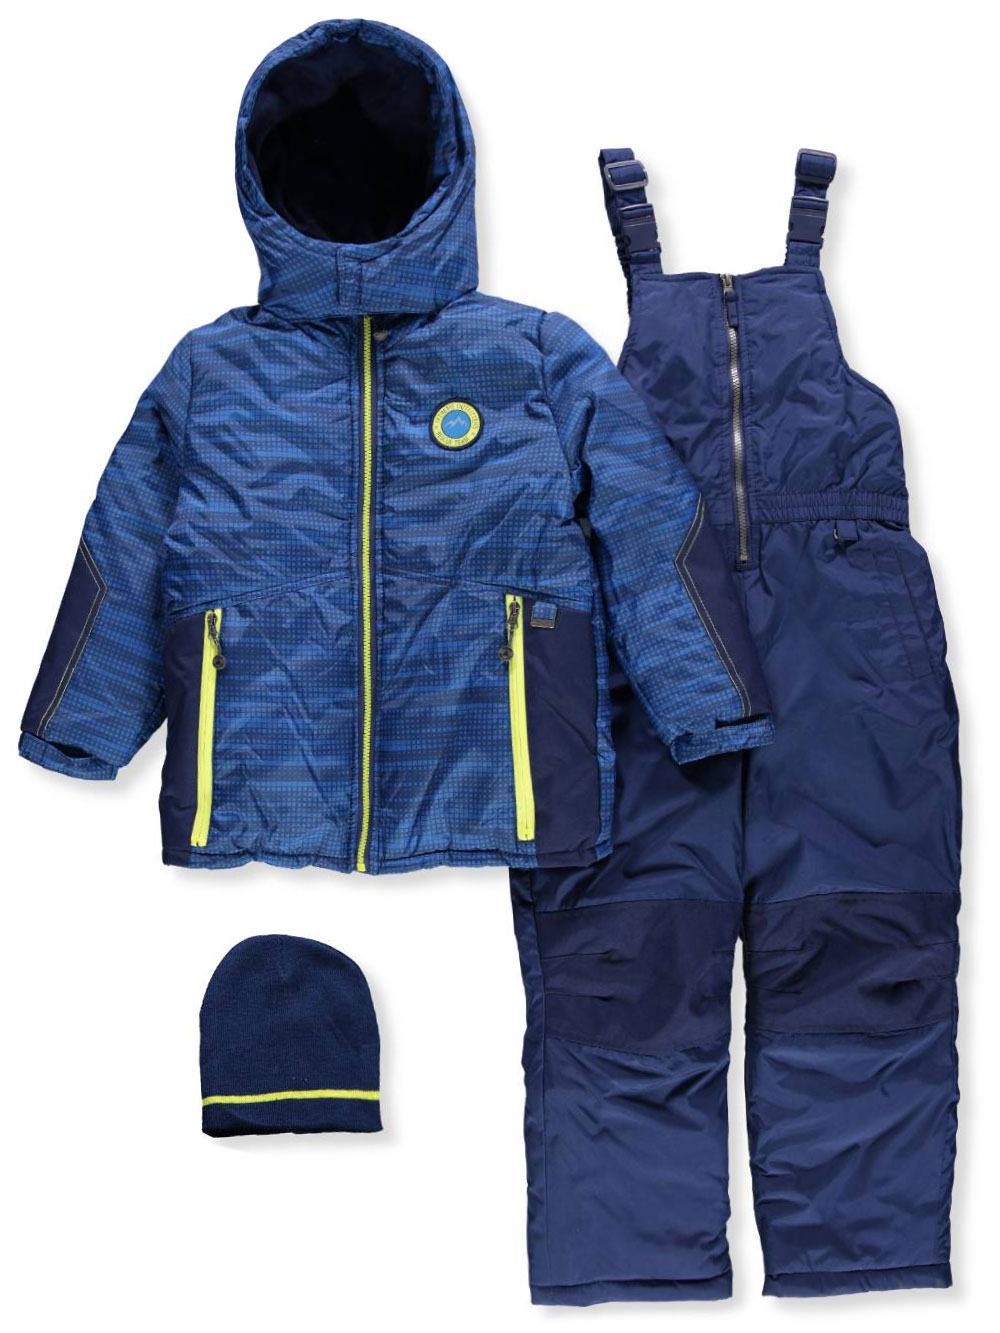 c240c1ccb Boys' 2-Piece Snowsuit with Beanie by iXtreme in Blue from Cookie's Kids